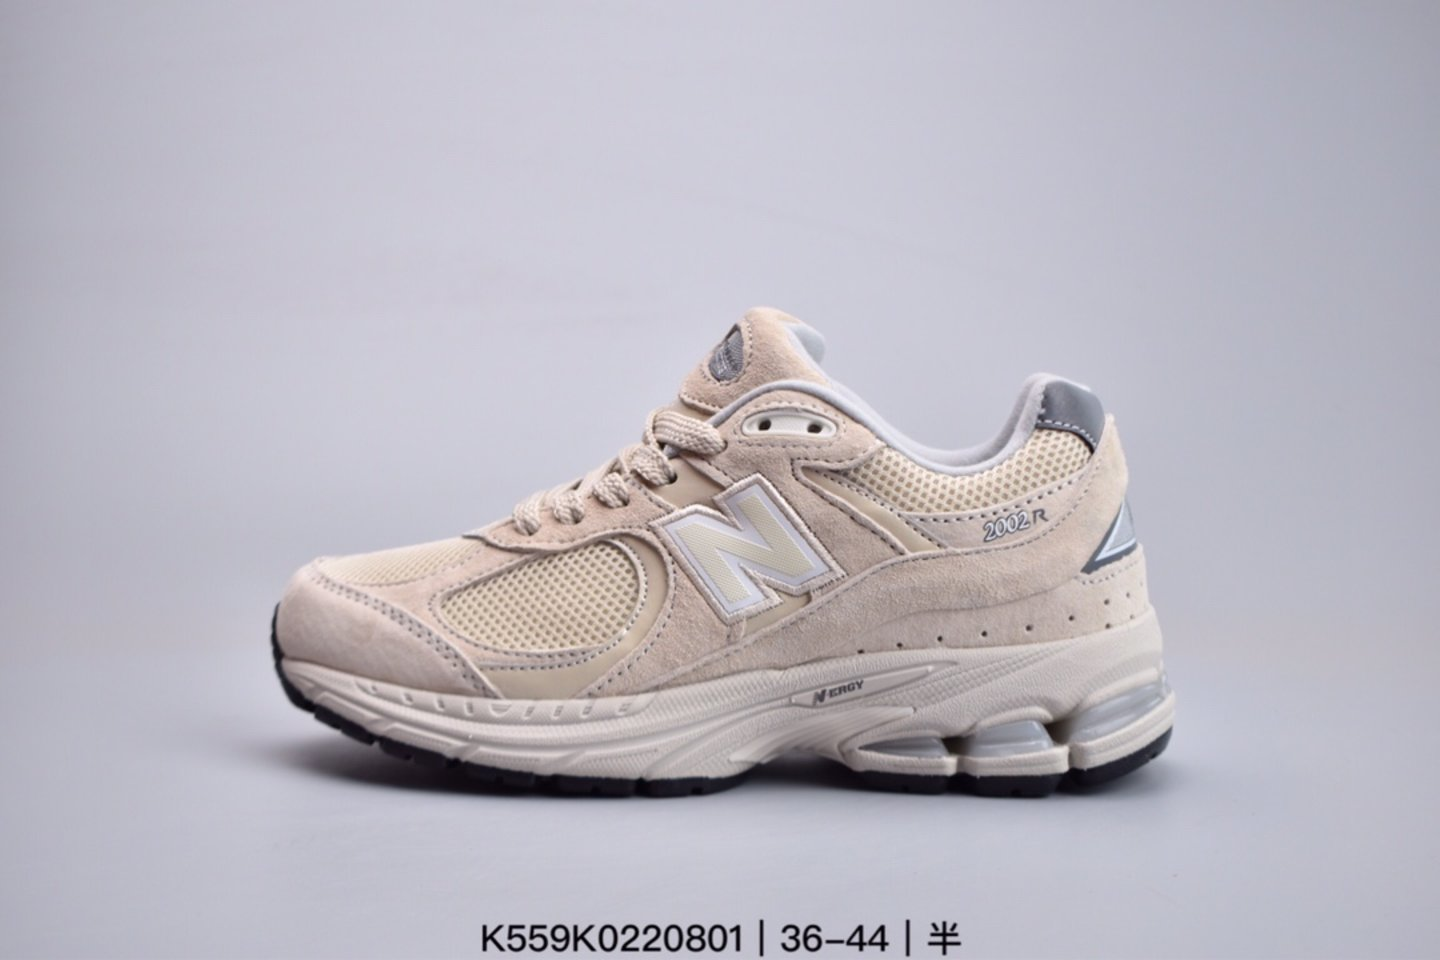 New Balance 2002 fashion casual shoes running shoes